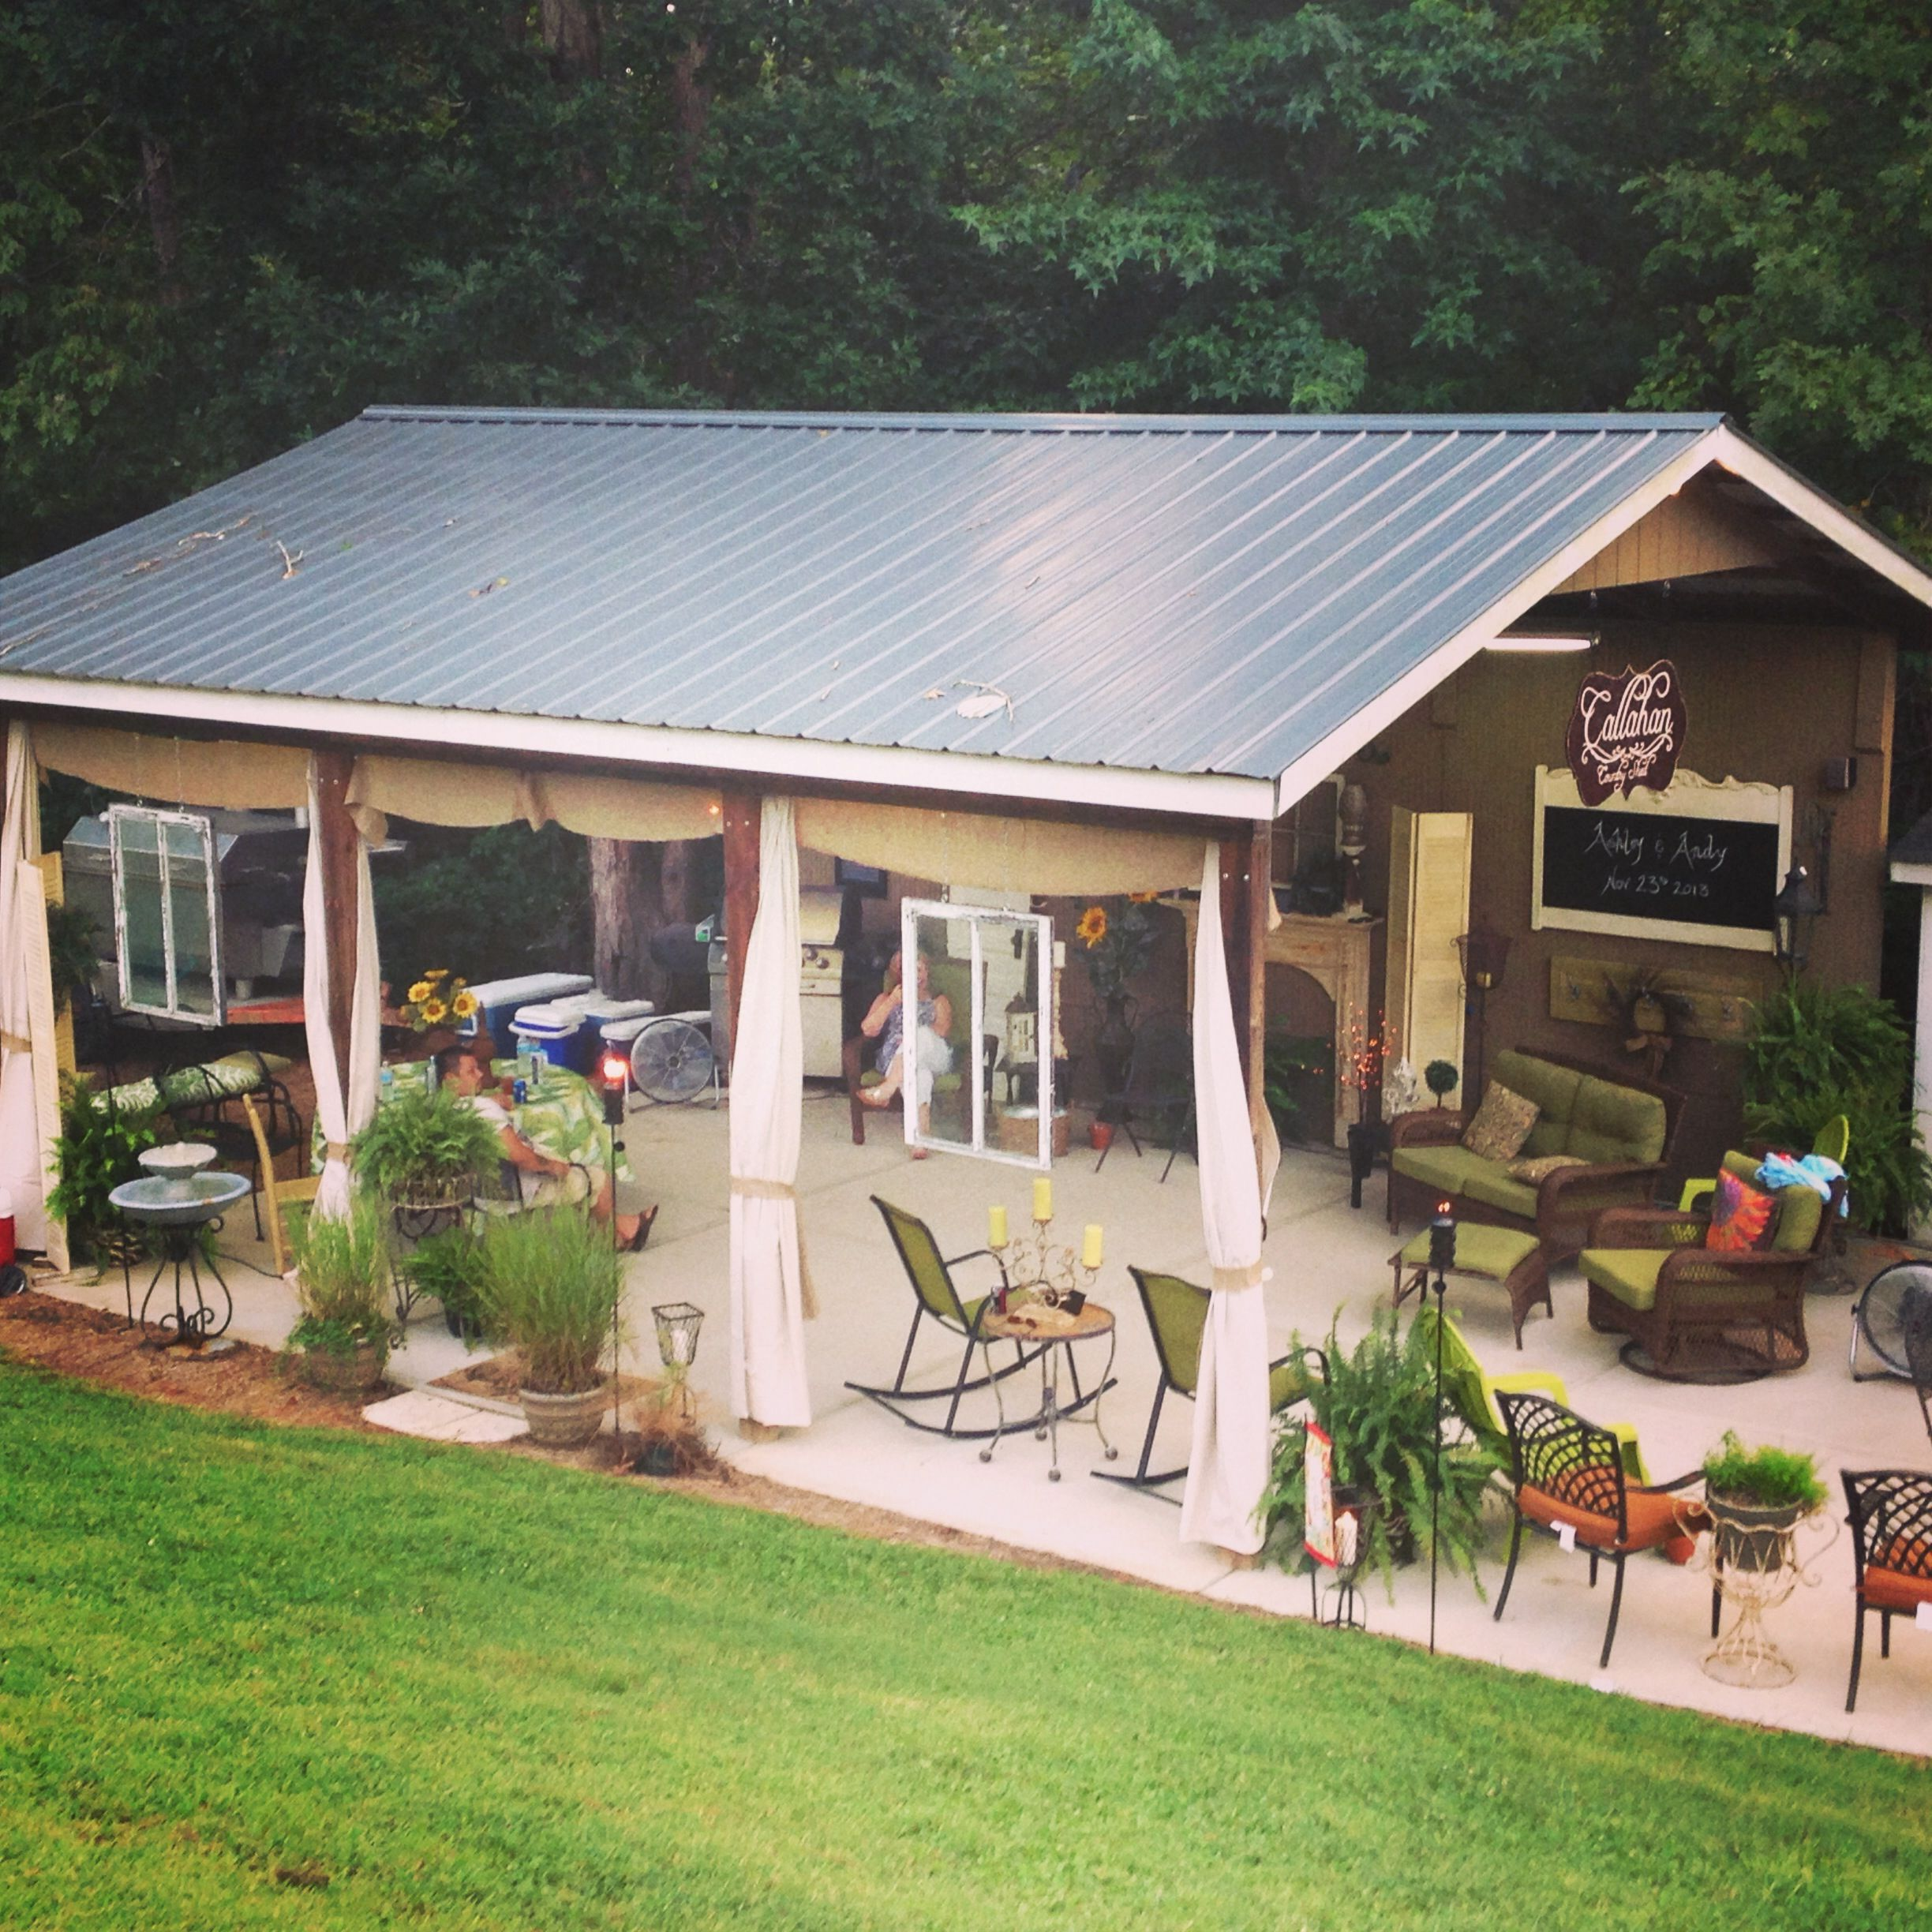 Backyard Shed for gatherings or parties Callahan Country Shed